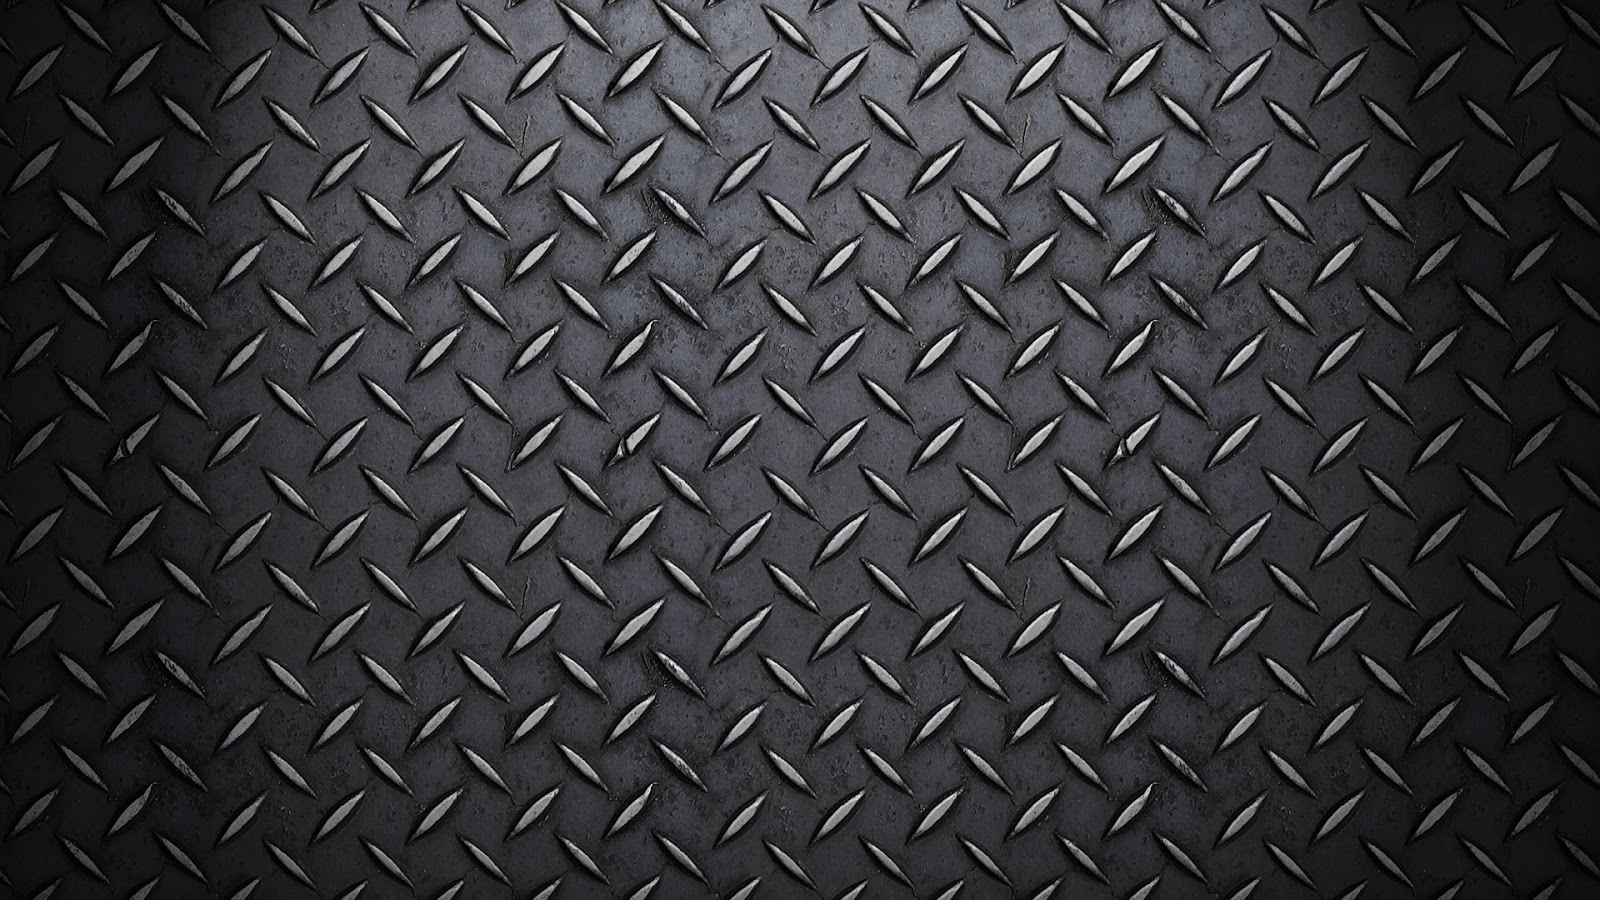 Black-texture-small-design-pattern-background-wallpapers-HD-for-tablets.jpg